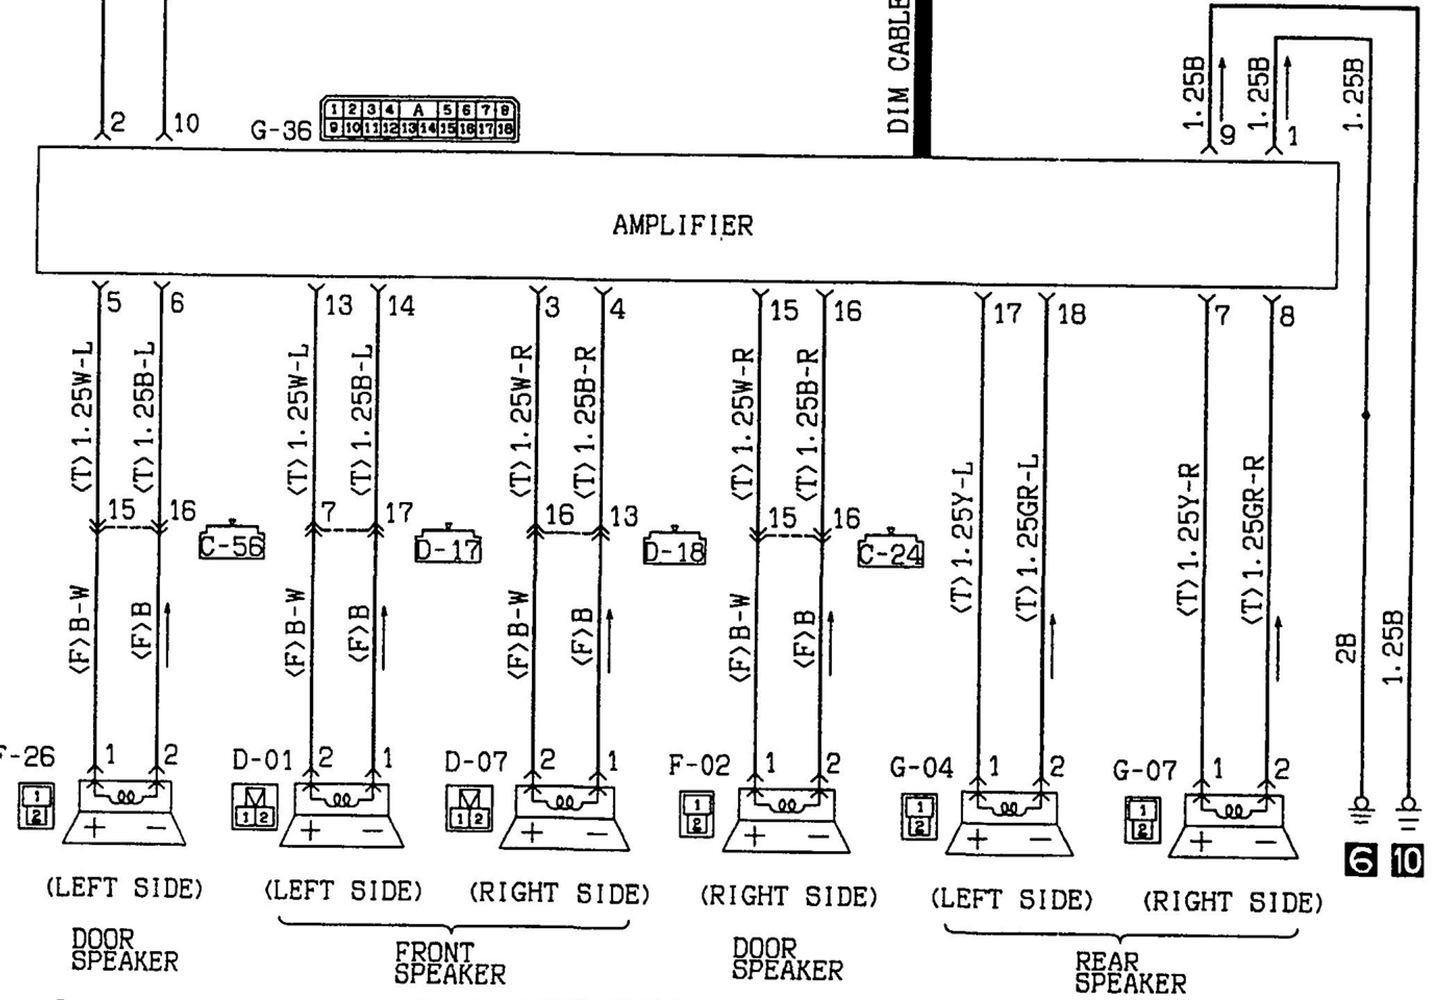 mitsubishi car stereo wiring diagram 1991 eclipse wiring. Black Bedroom Furniture Sets. Home Design Ideas